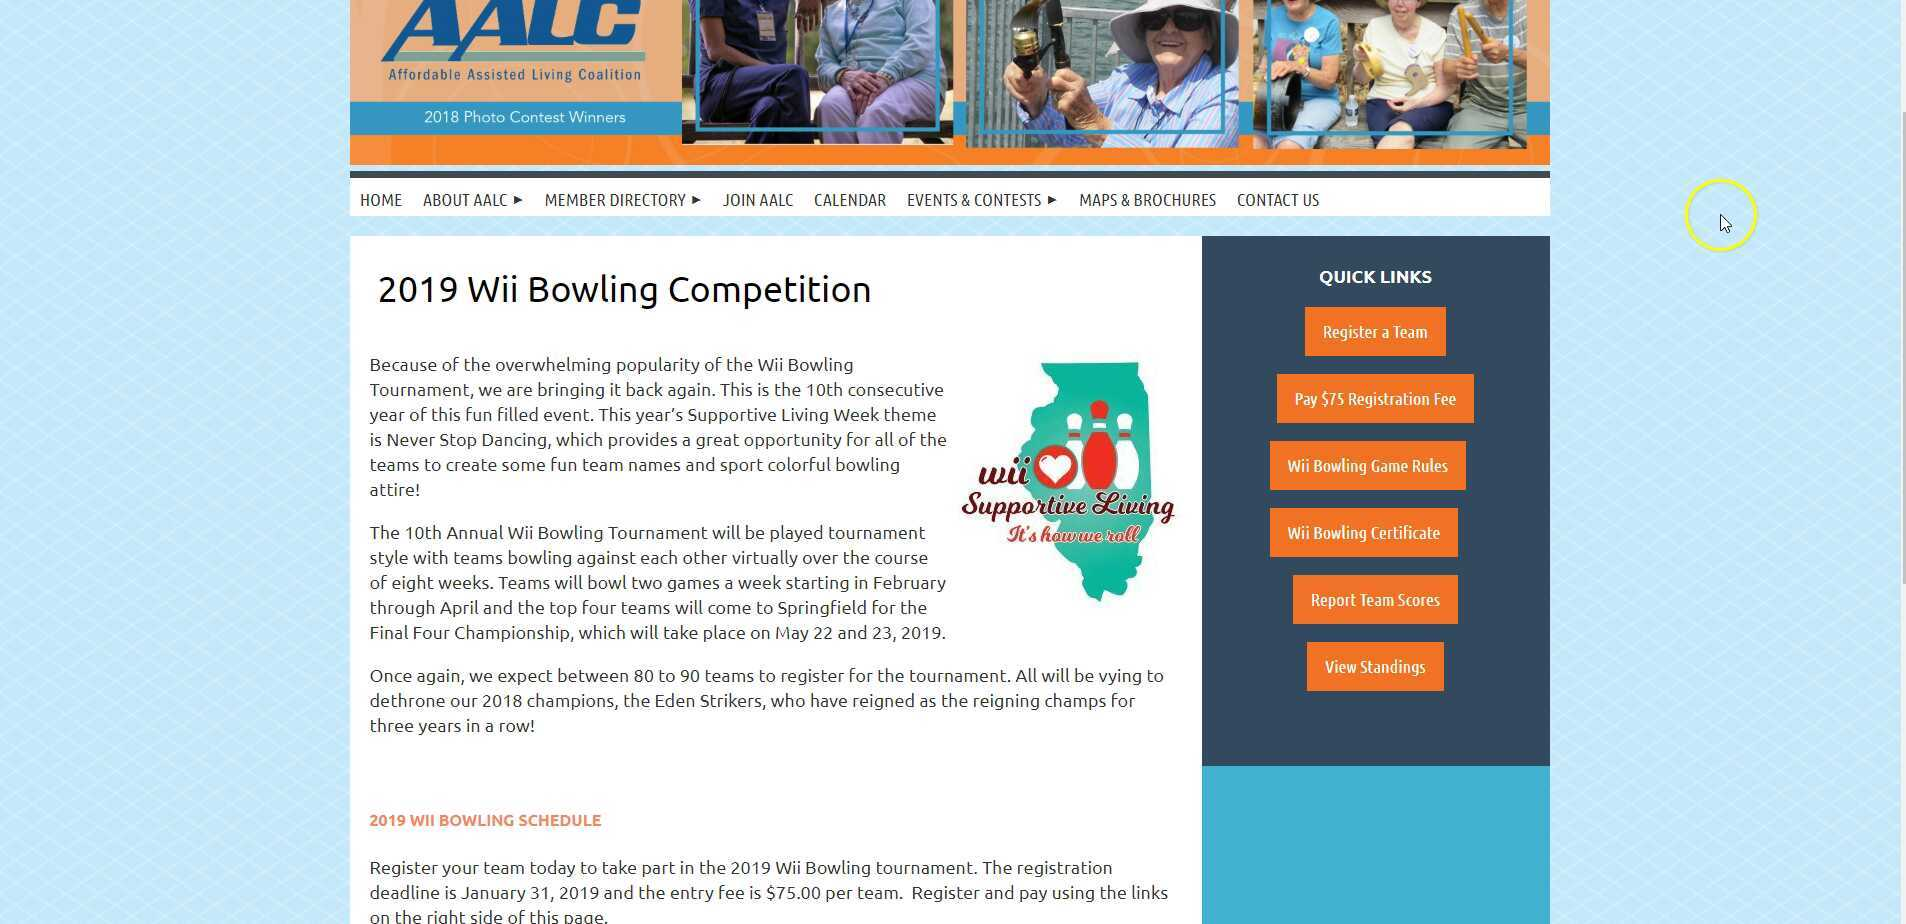 Affordable Assisted Living Coalition - 2019 Wii Bowling Competition